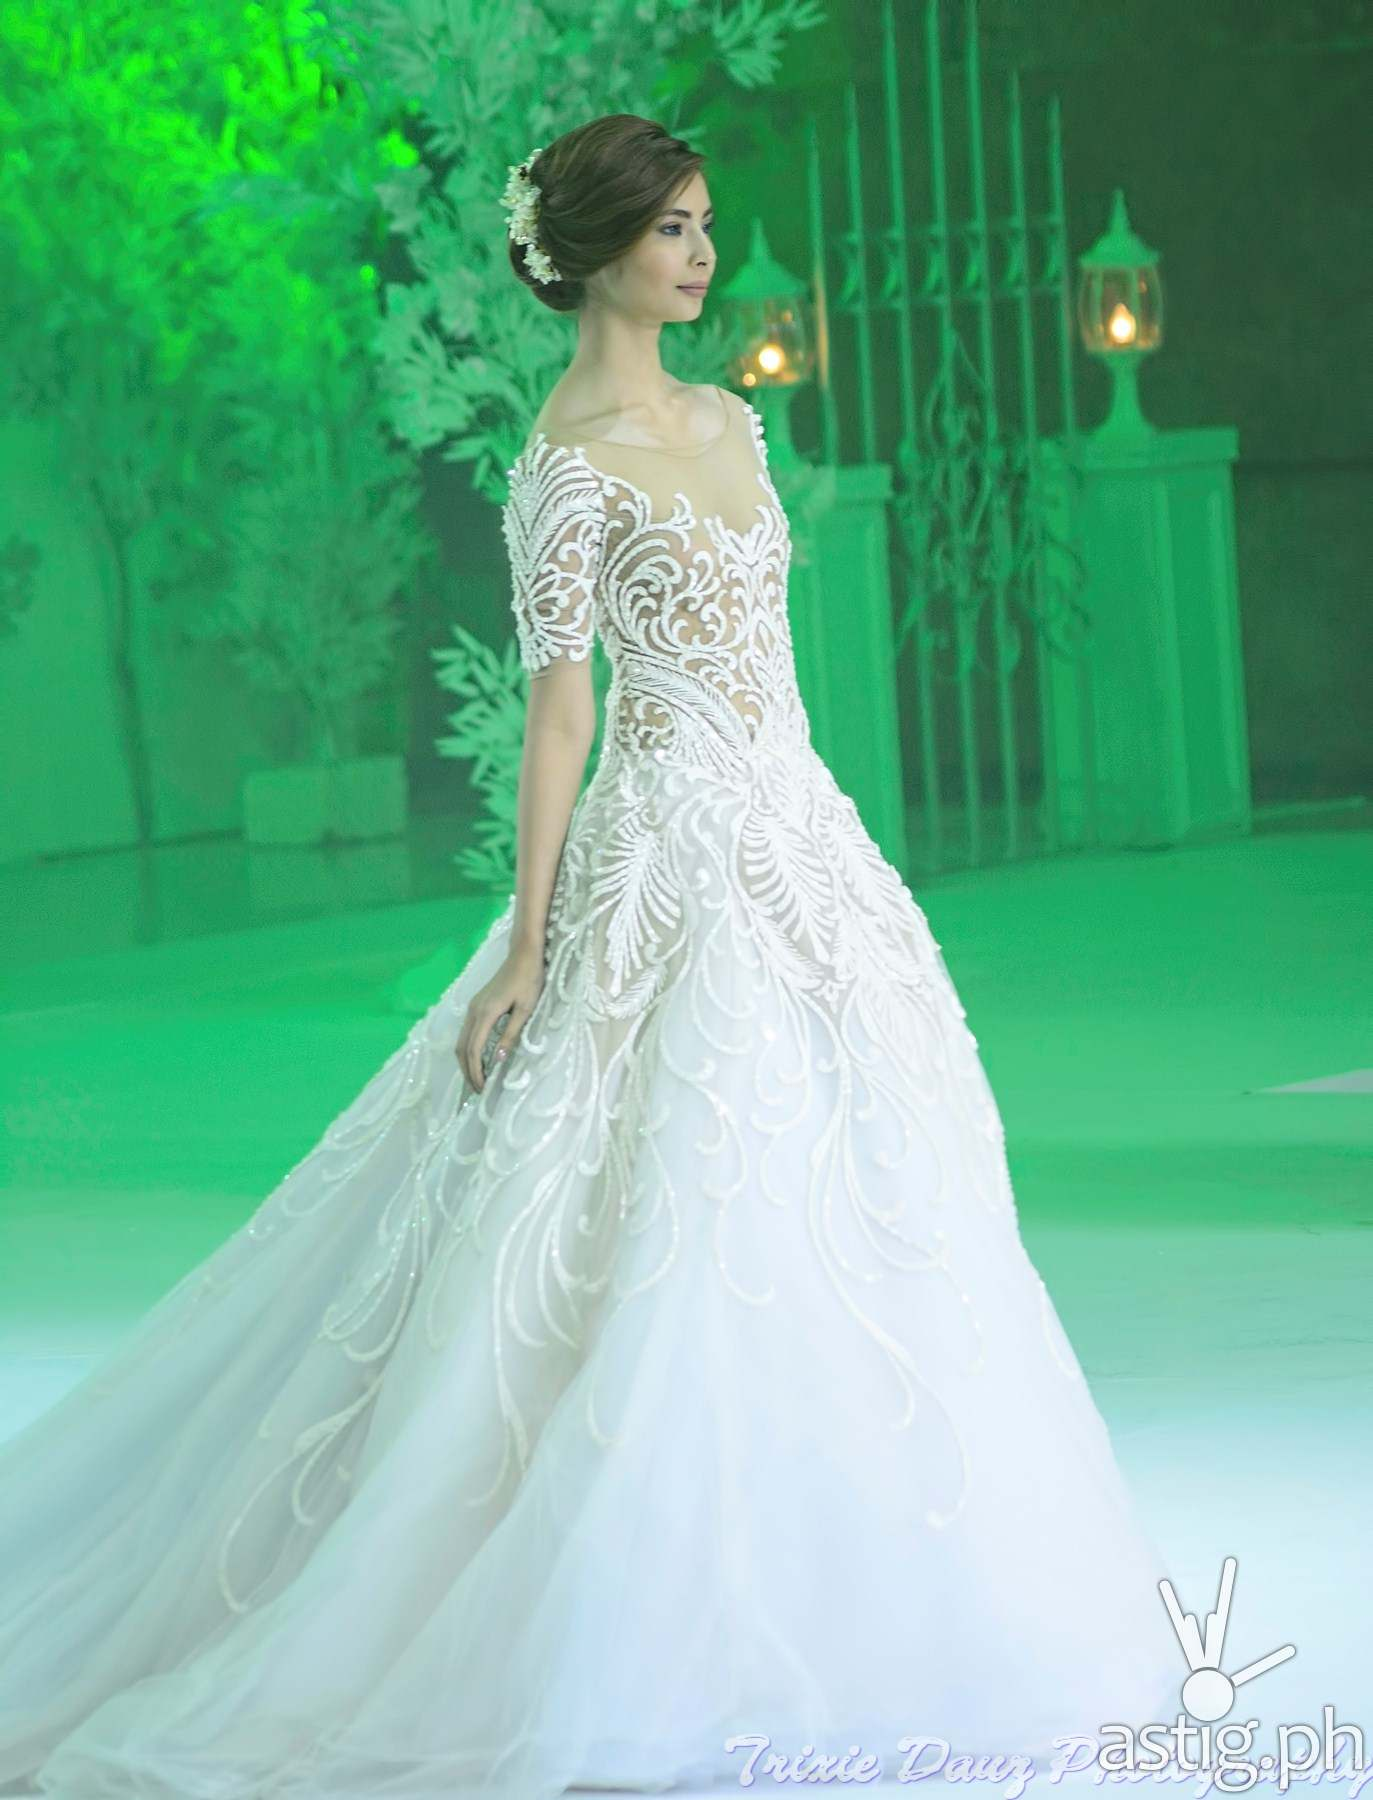 4 best modern wedding gown designs by Pinoys showcased at Marriott ...